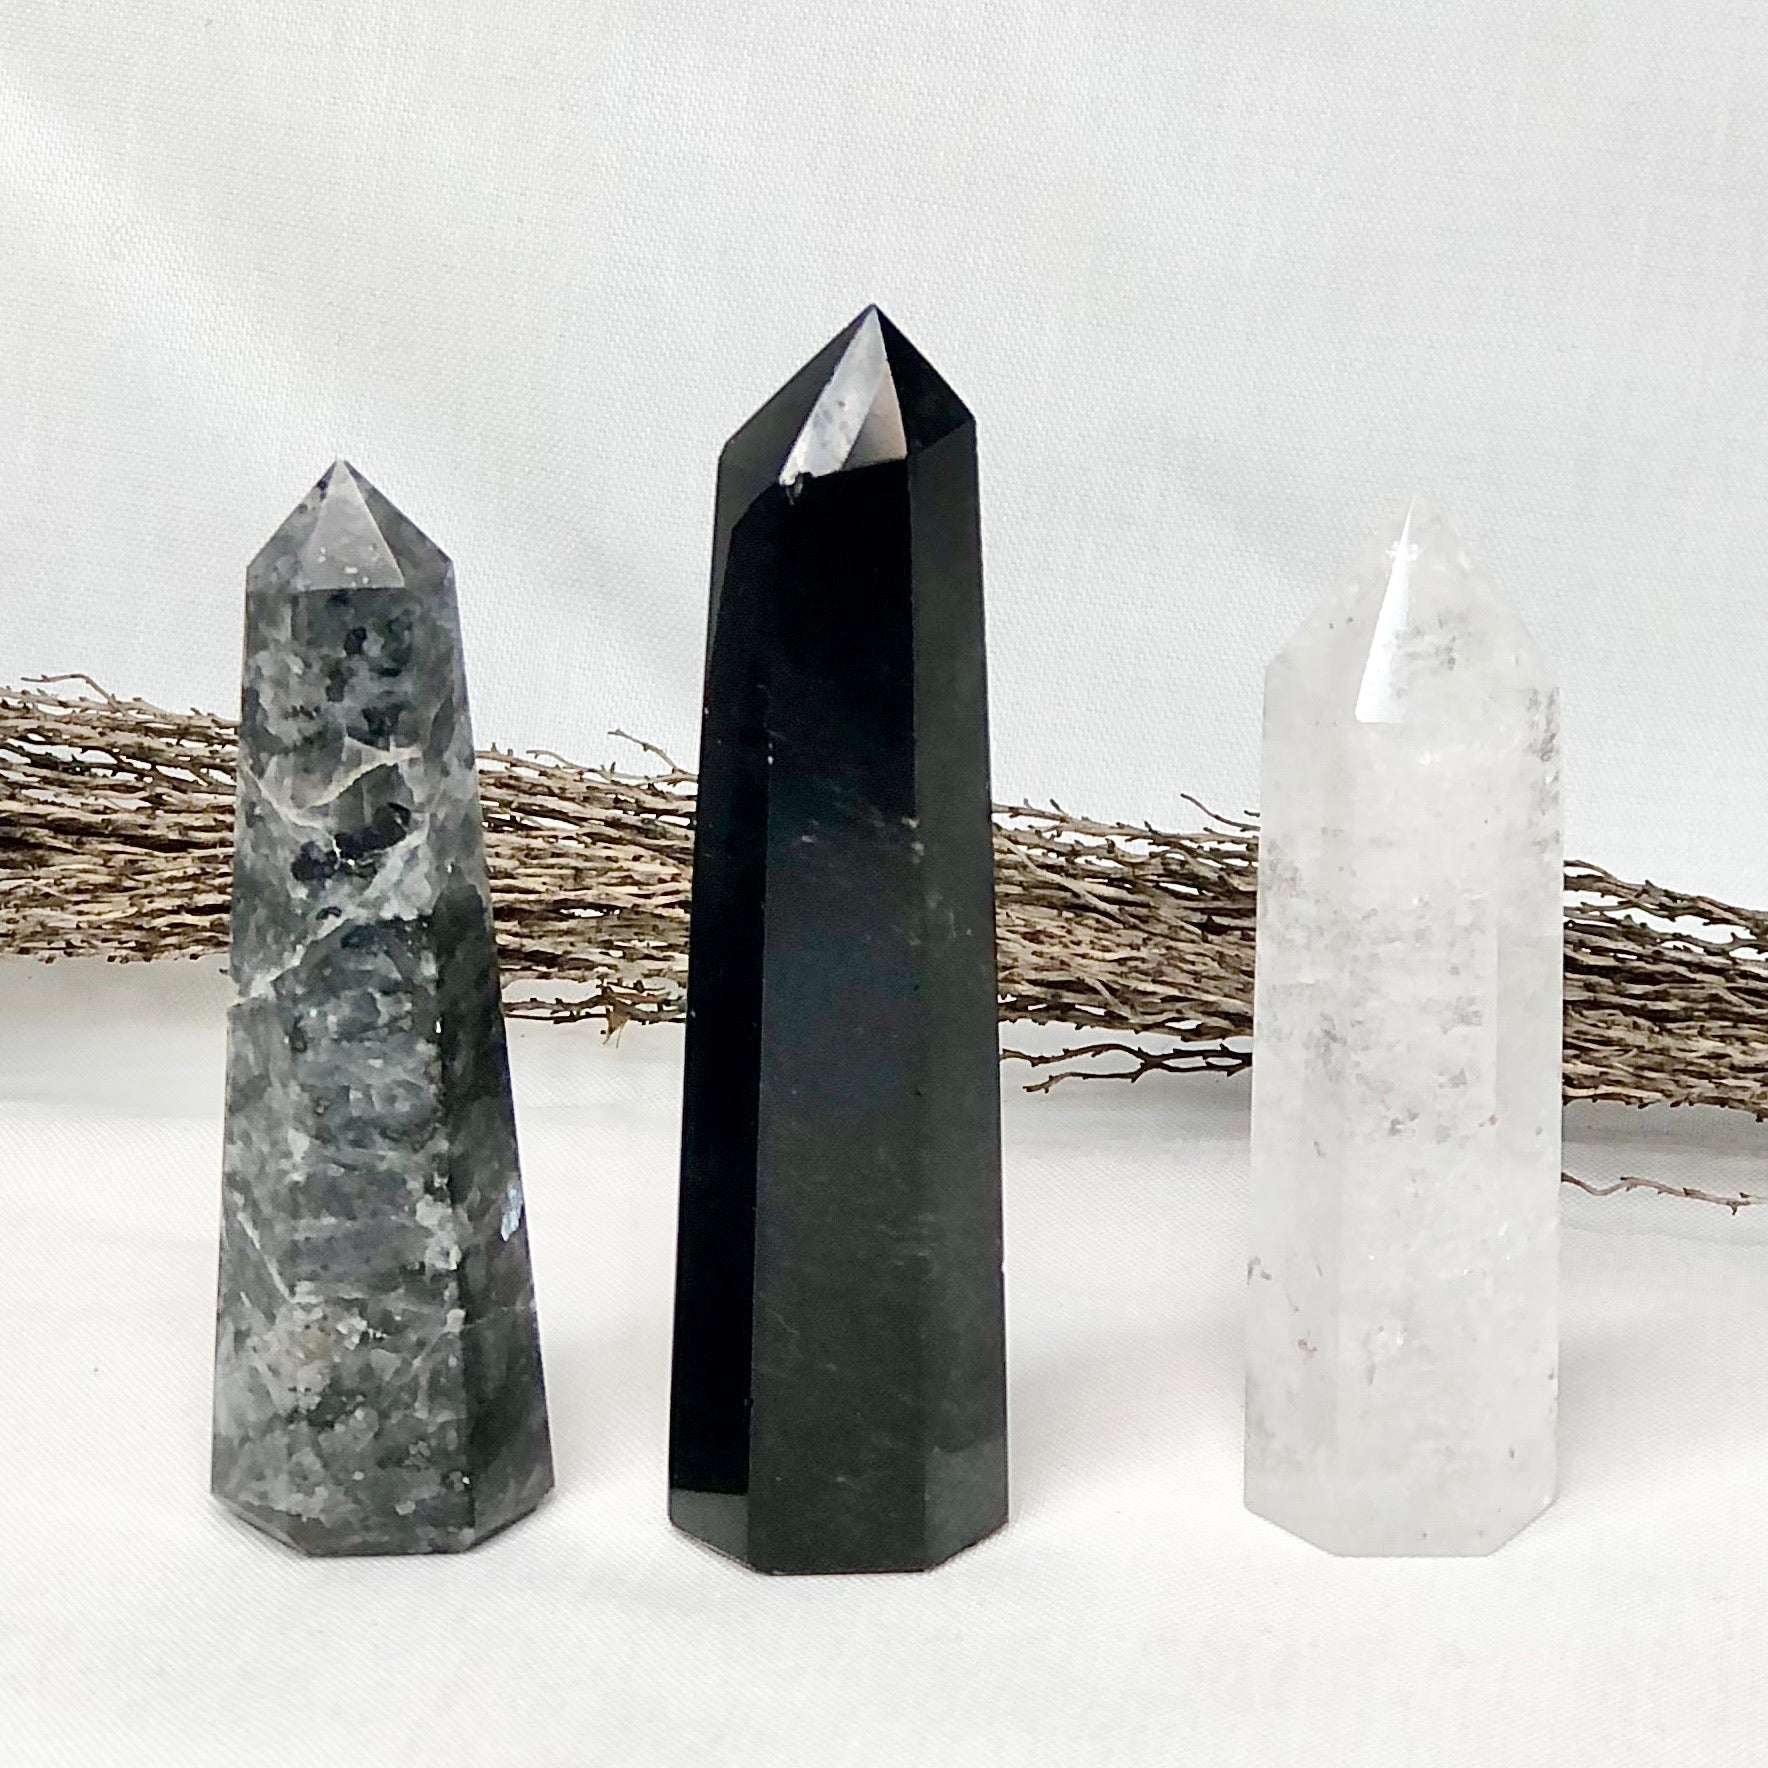 Gift, decor and crystal shop Australia: Trio of crystal towers - Obsidian, Mystic Merlinite + Ice Quartz points